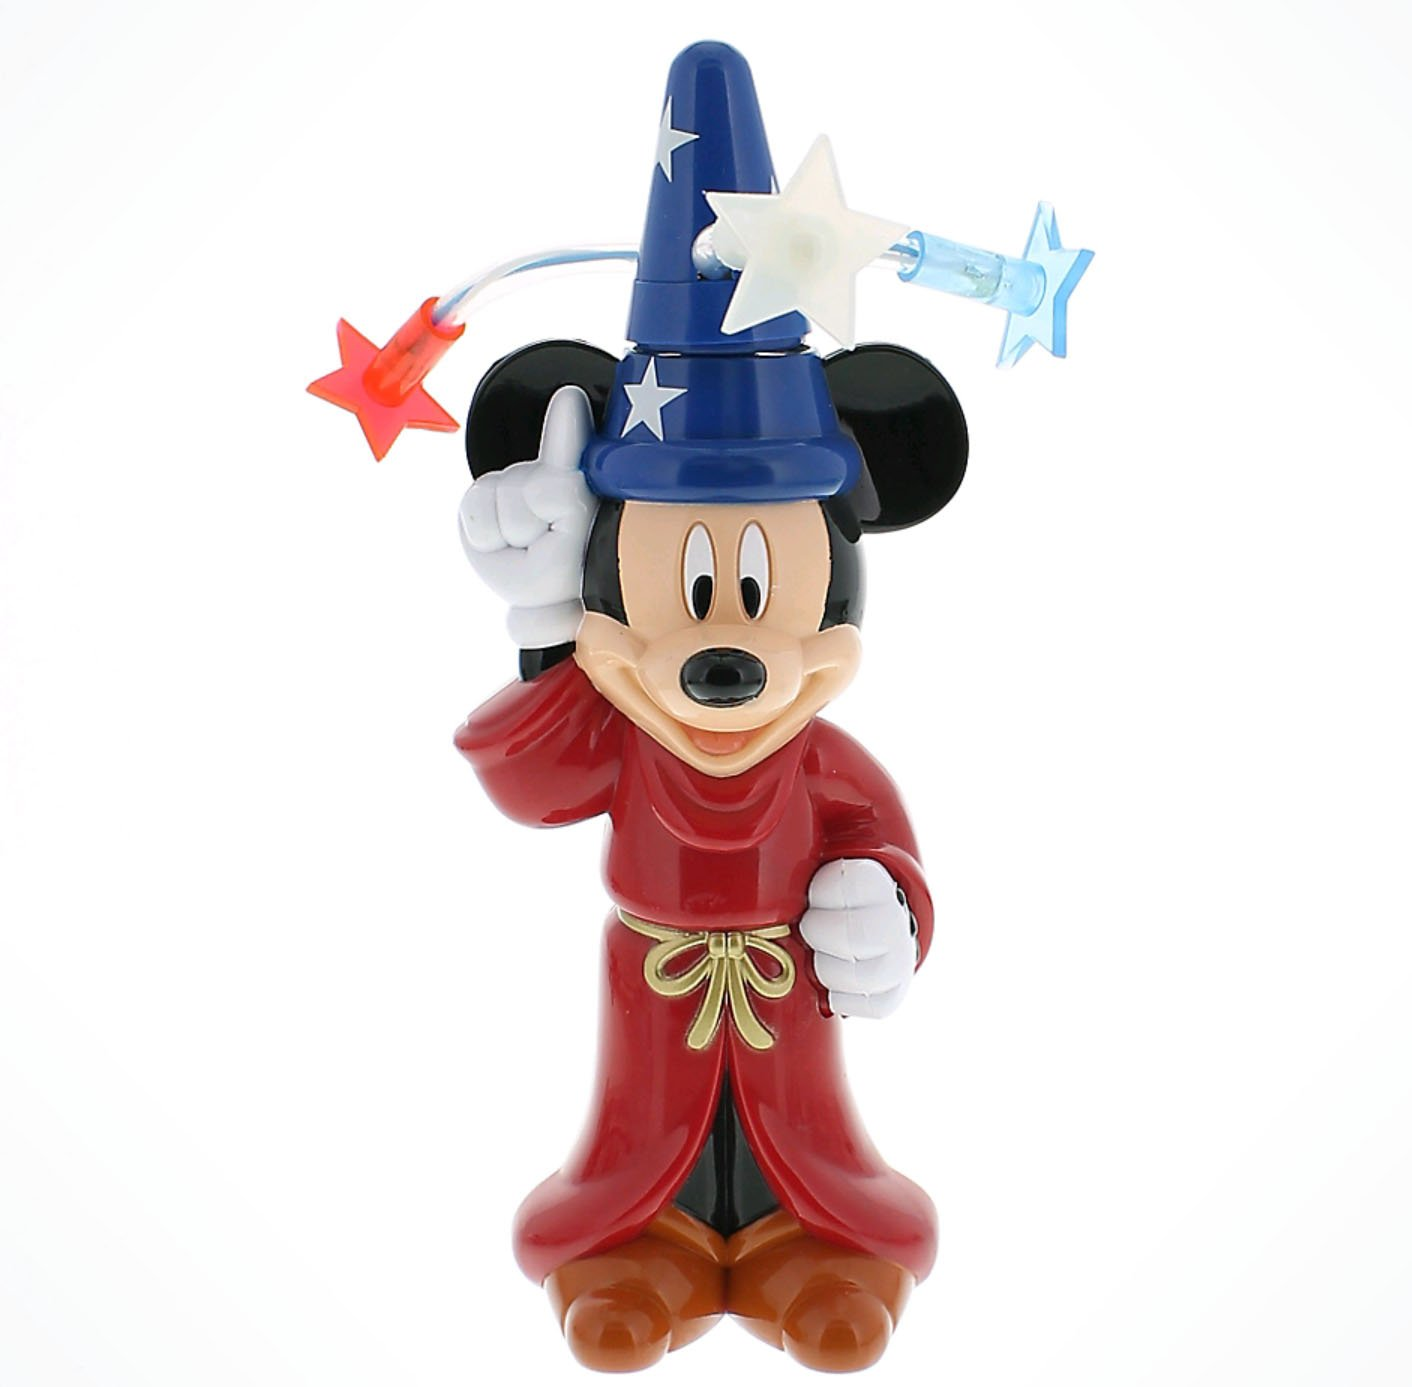 Disney Parks Exclusive Sorcerer Mickey Mouse Light Up Spinner Chaser Toy